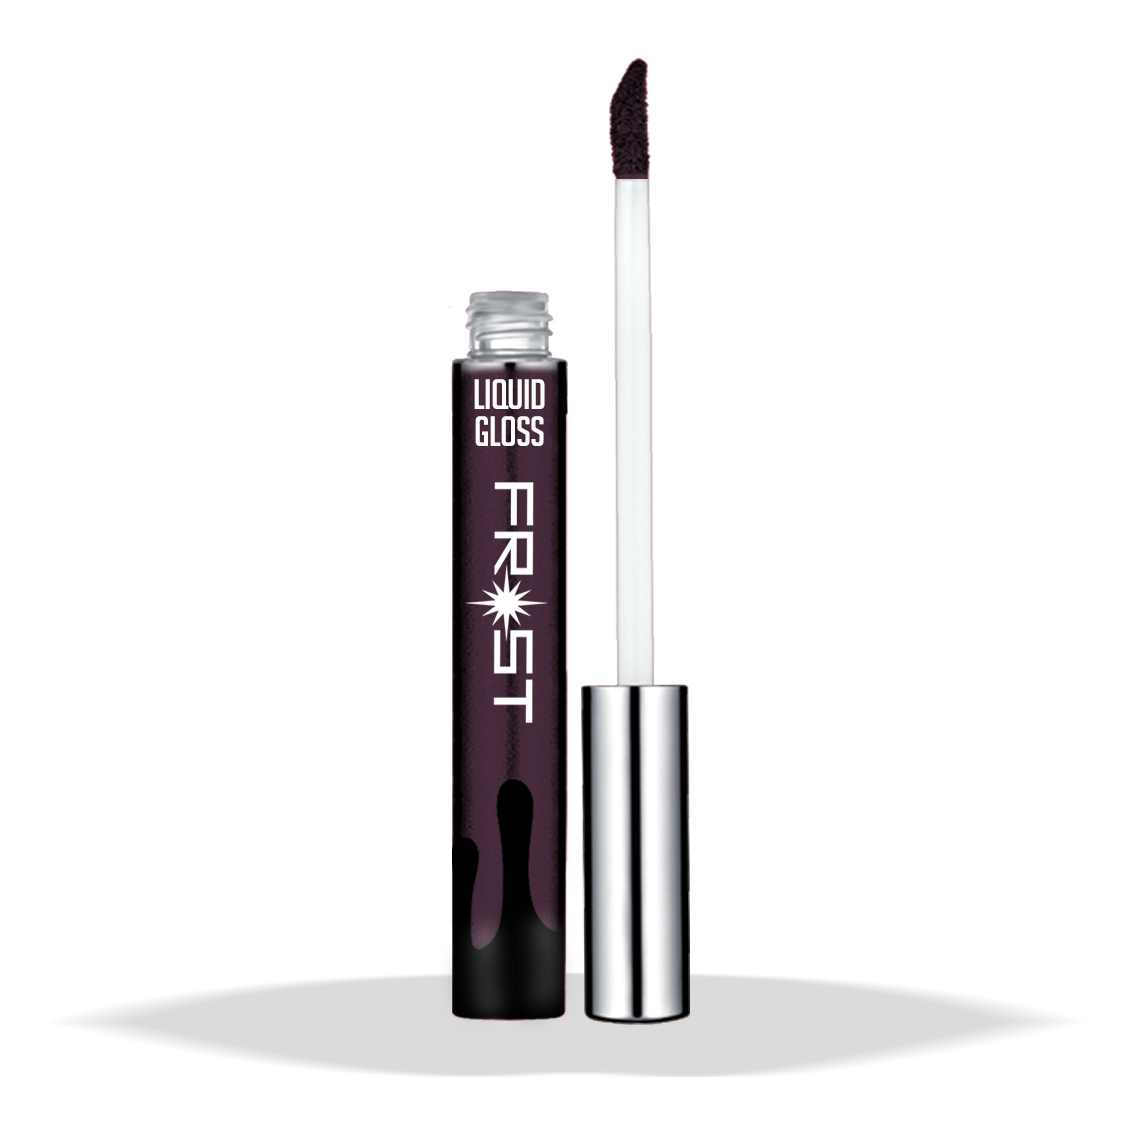 Liquid Gloss-Wineberry